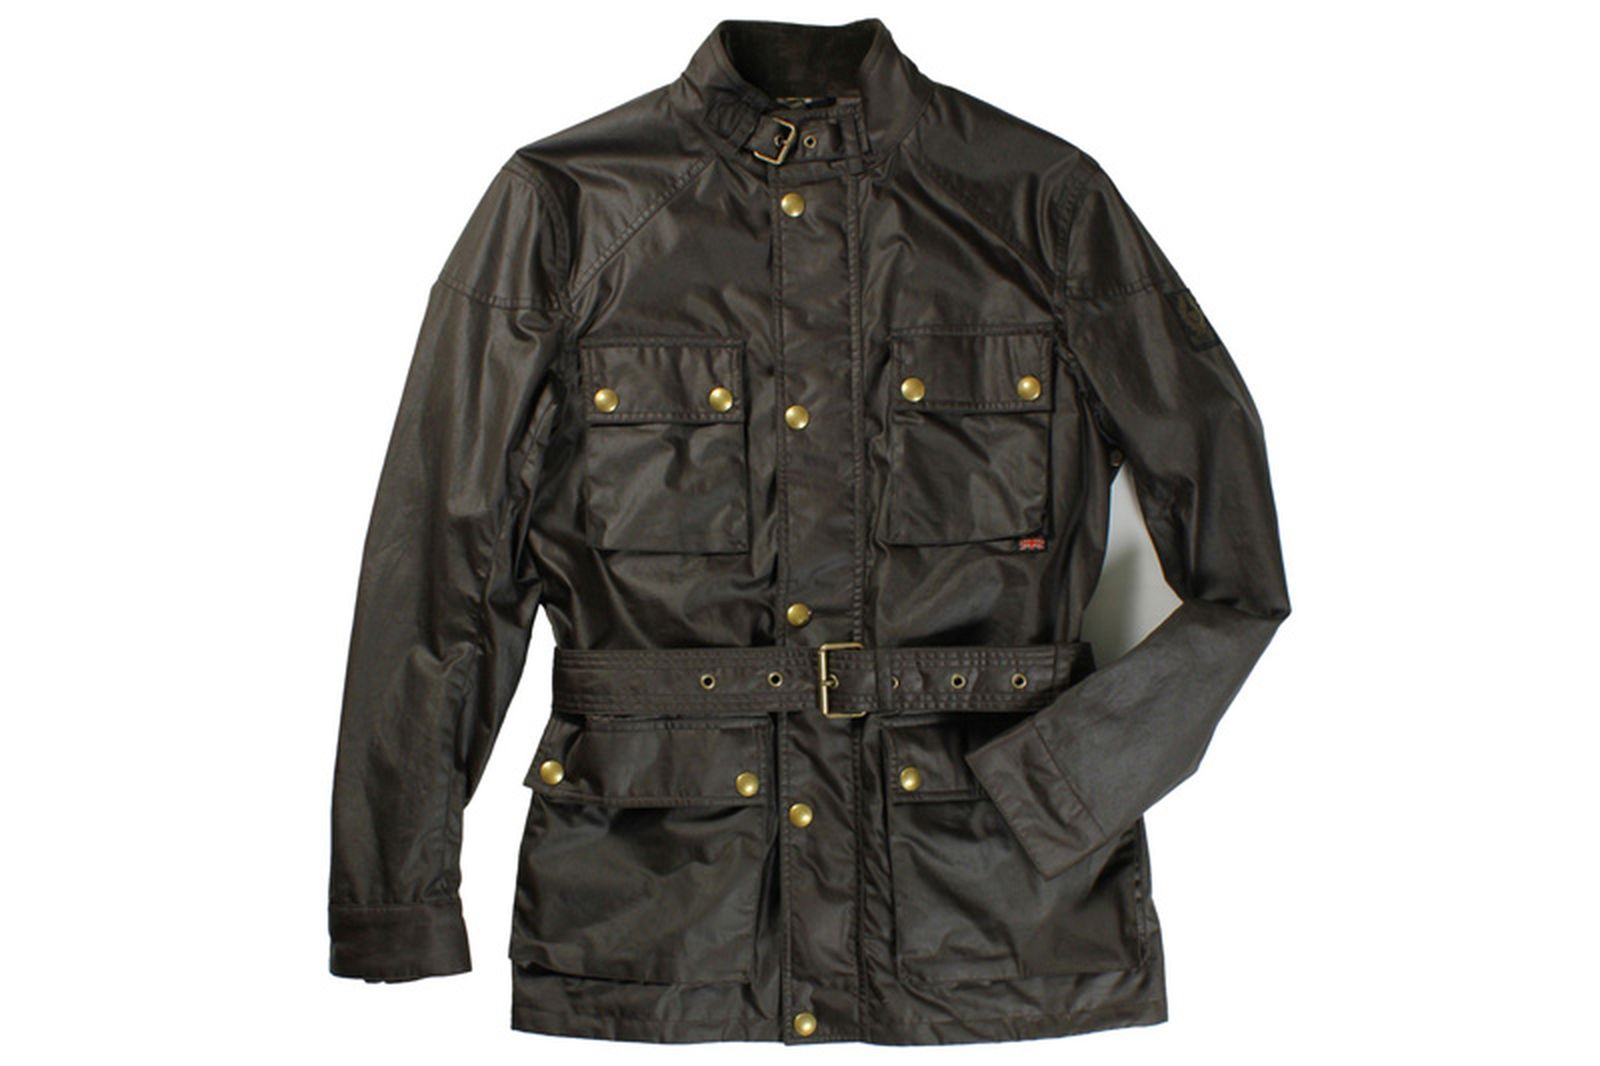 Belstaff-Roadmaster-60z-Wax-jacket